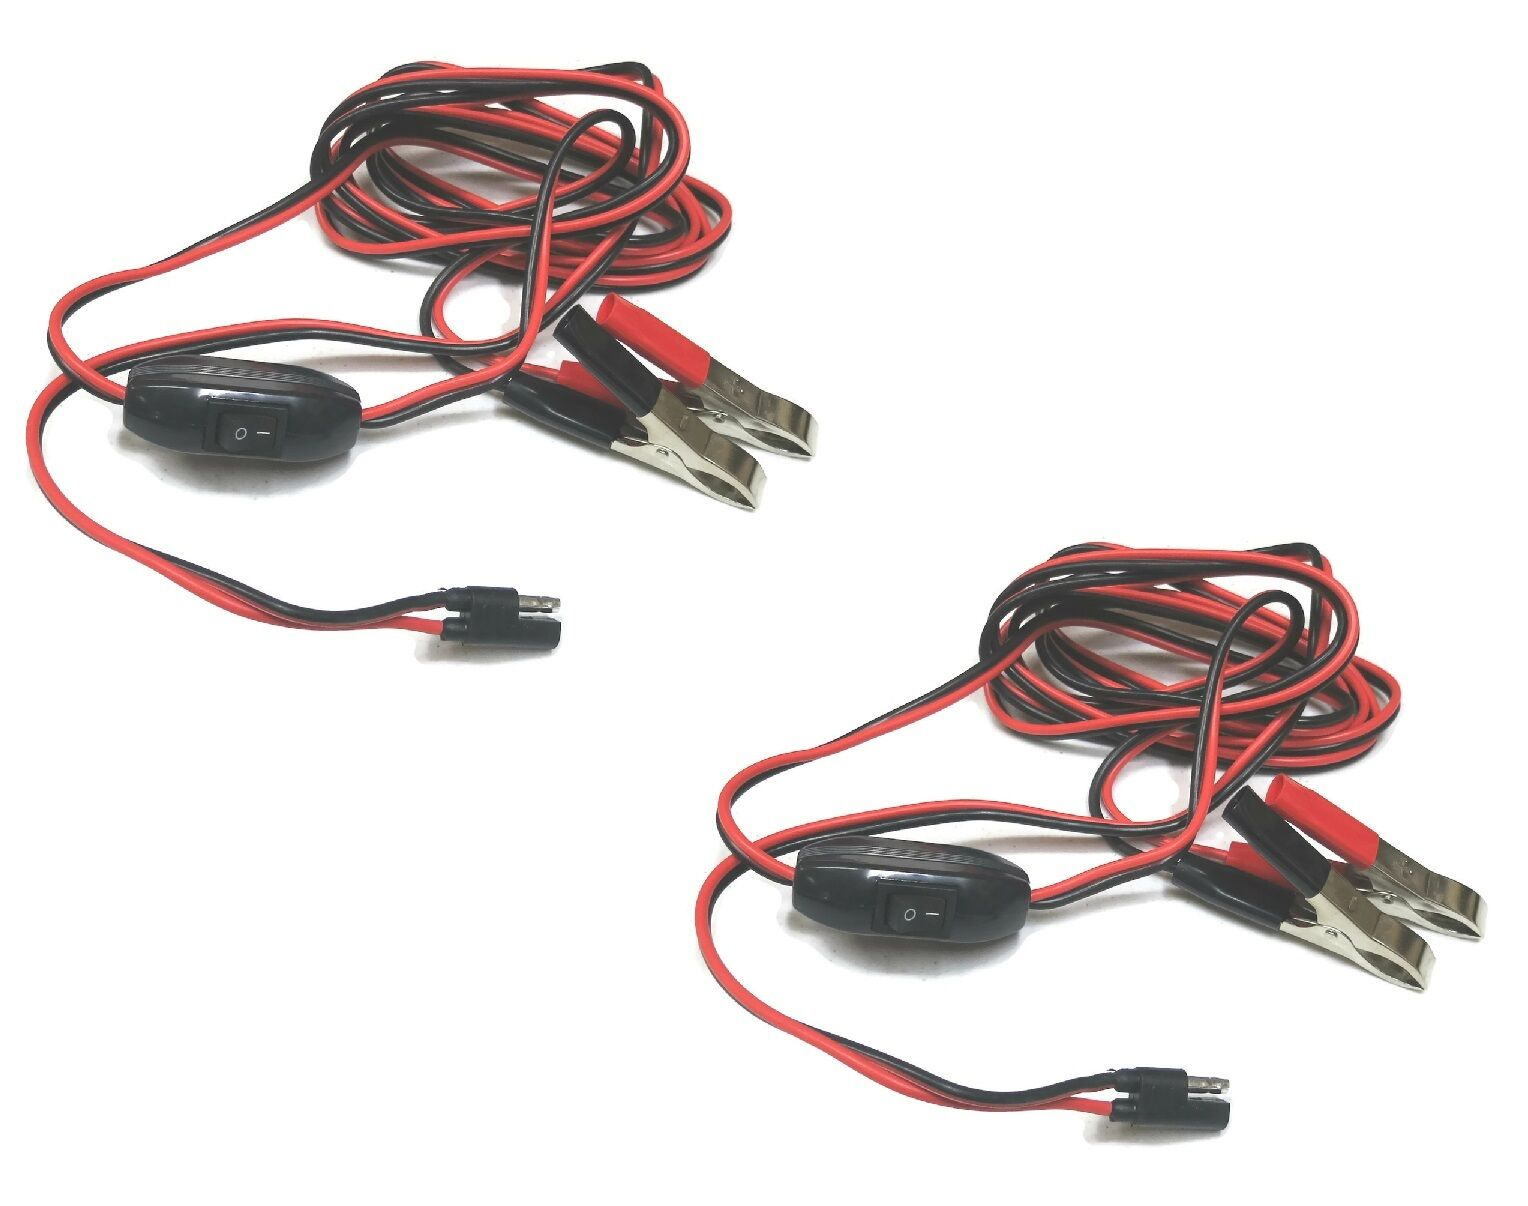 $_57?set_id=880000500F 2) 8 ft wiring harness power plug kit for 12v demand diaphragm wiring harness power king 2416 at panicattacktreatment.co